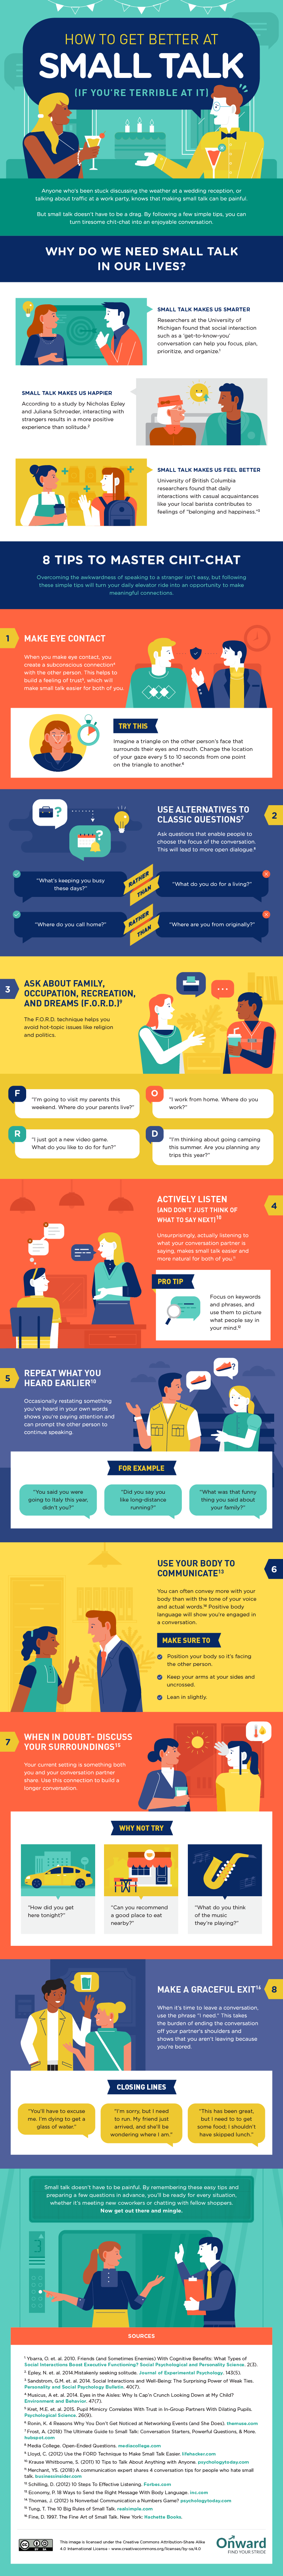 How to Get Better at Small Talk Infographic